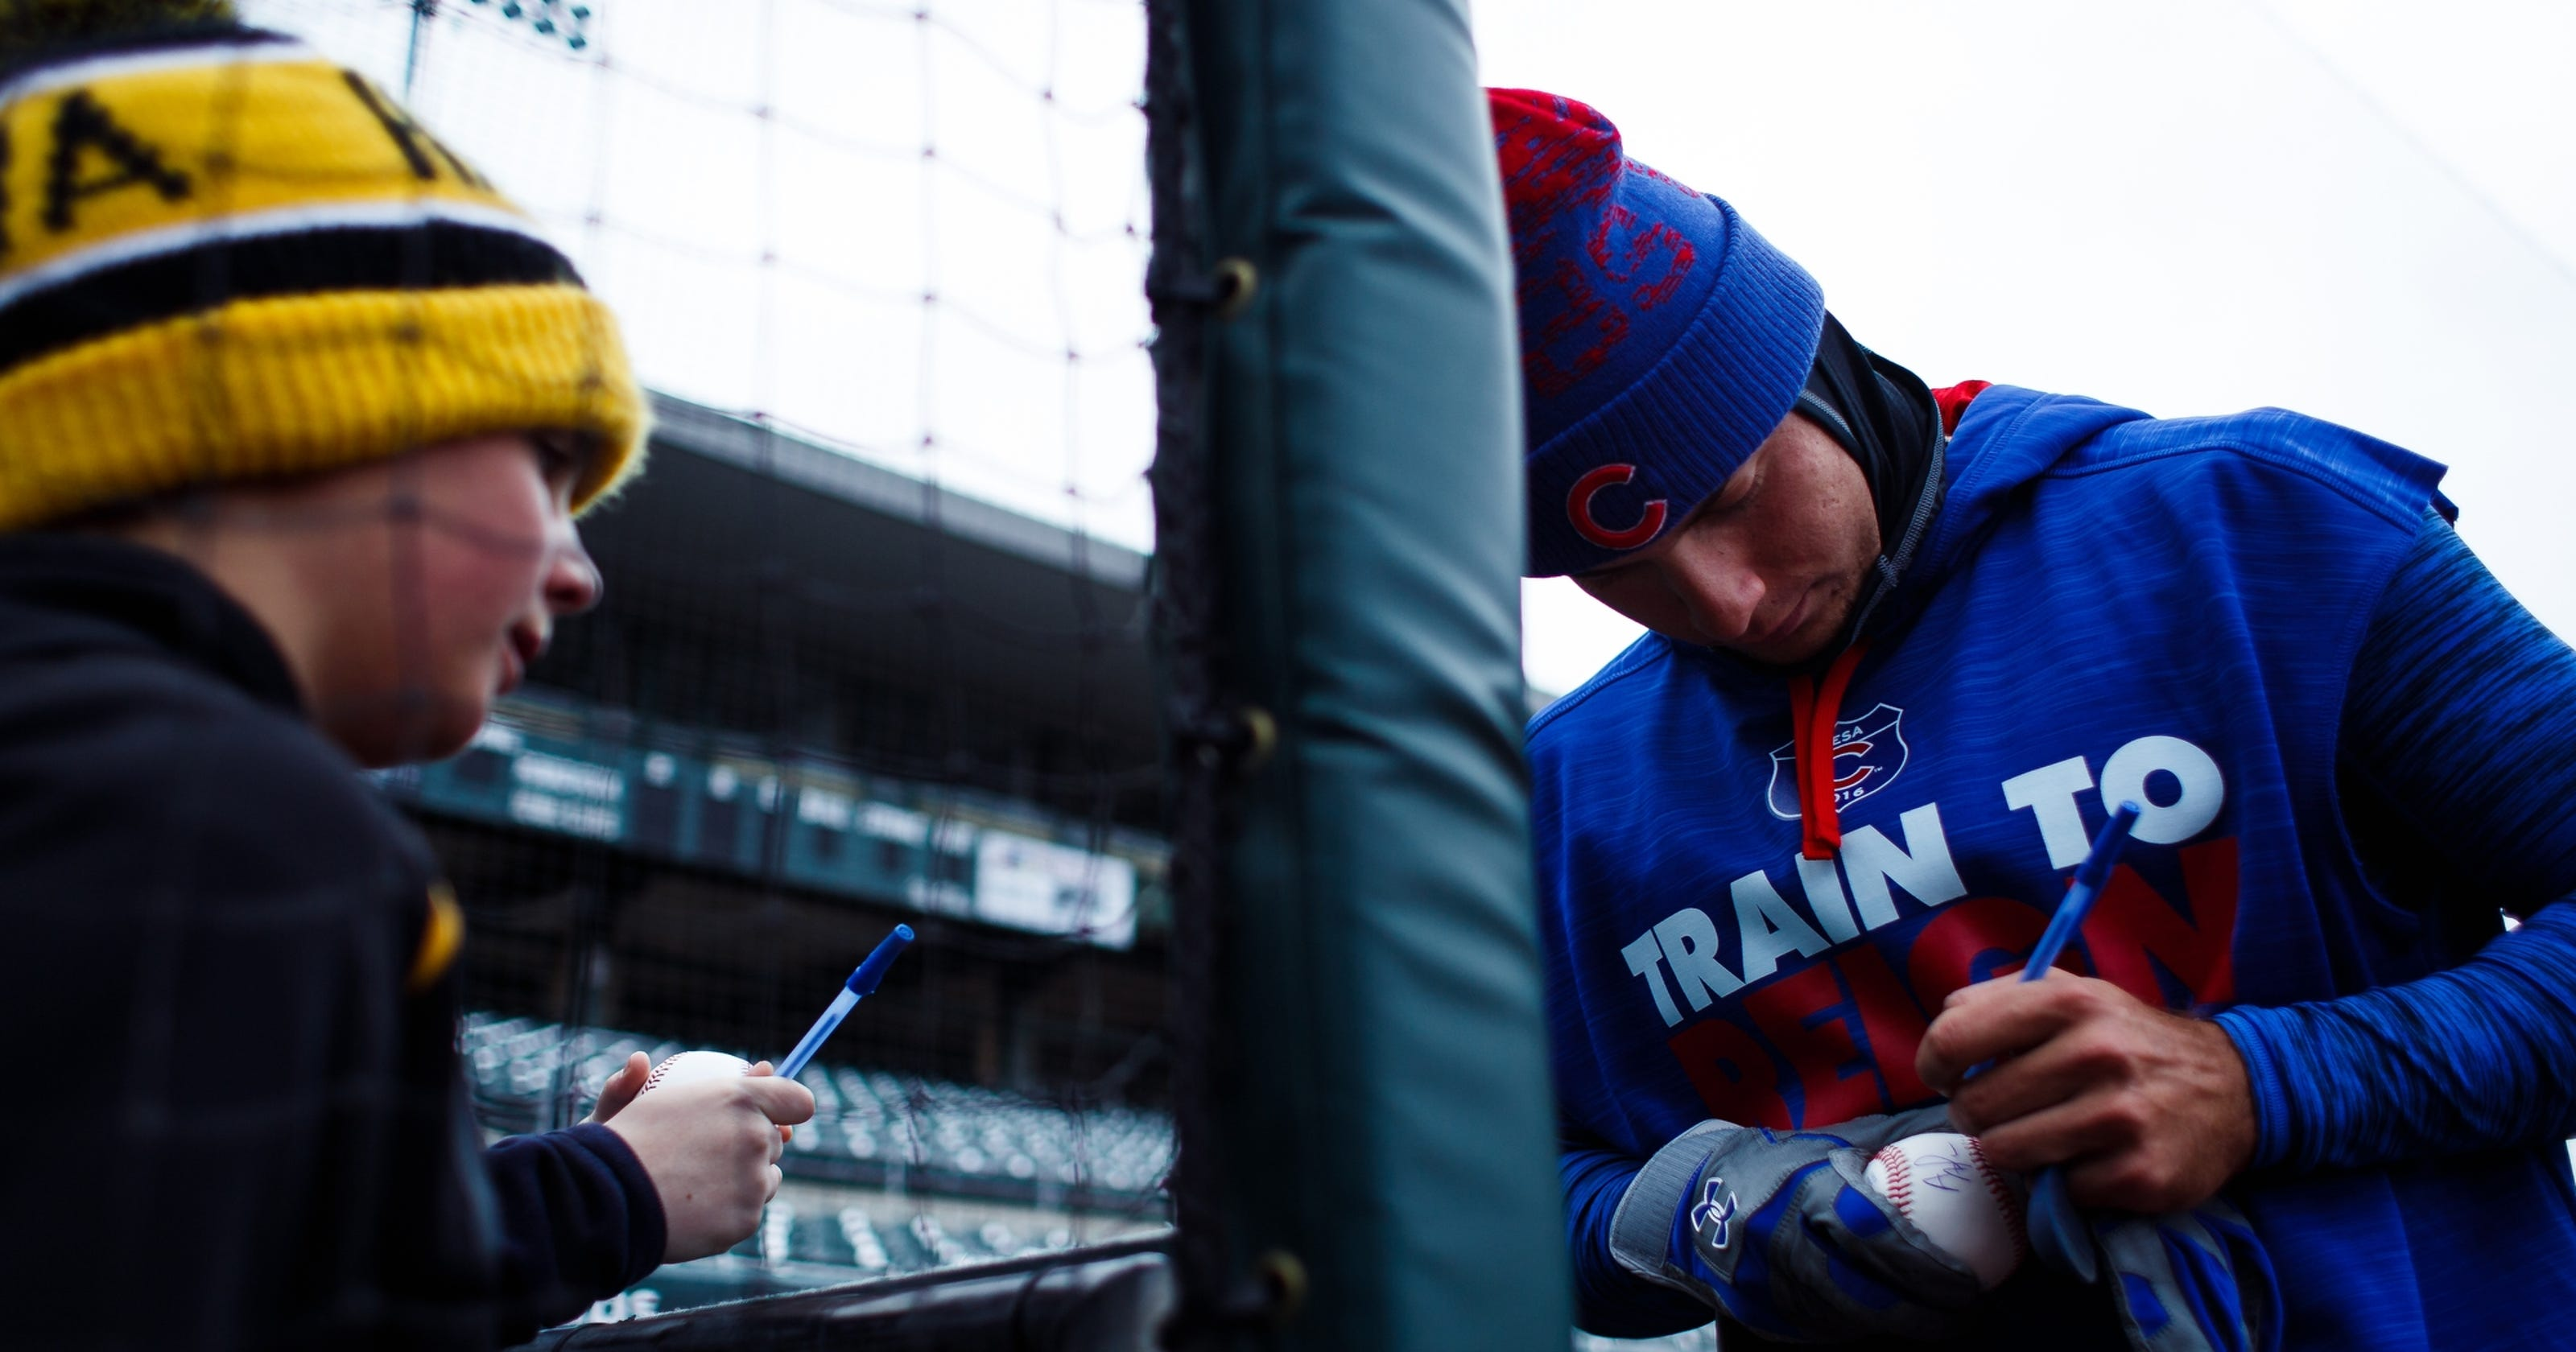 Icubs Schedule 2020 Iowa Cubs to extend netting to foul poles